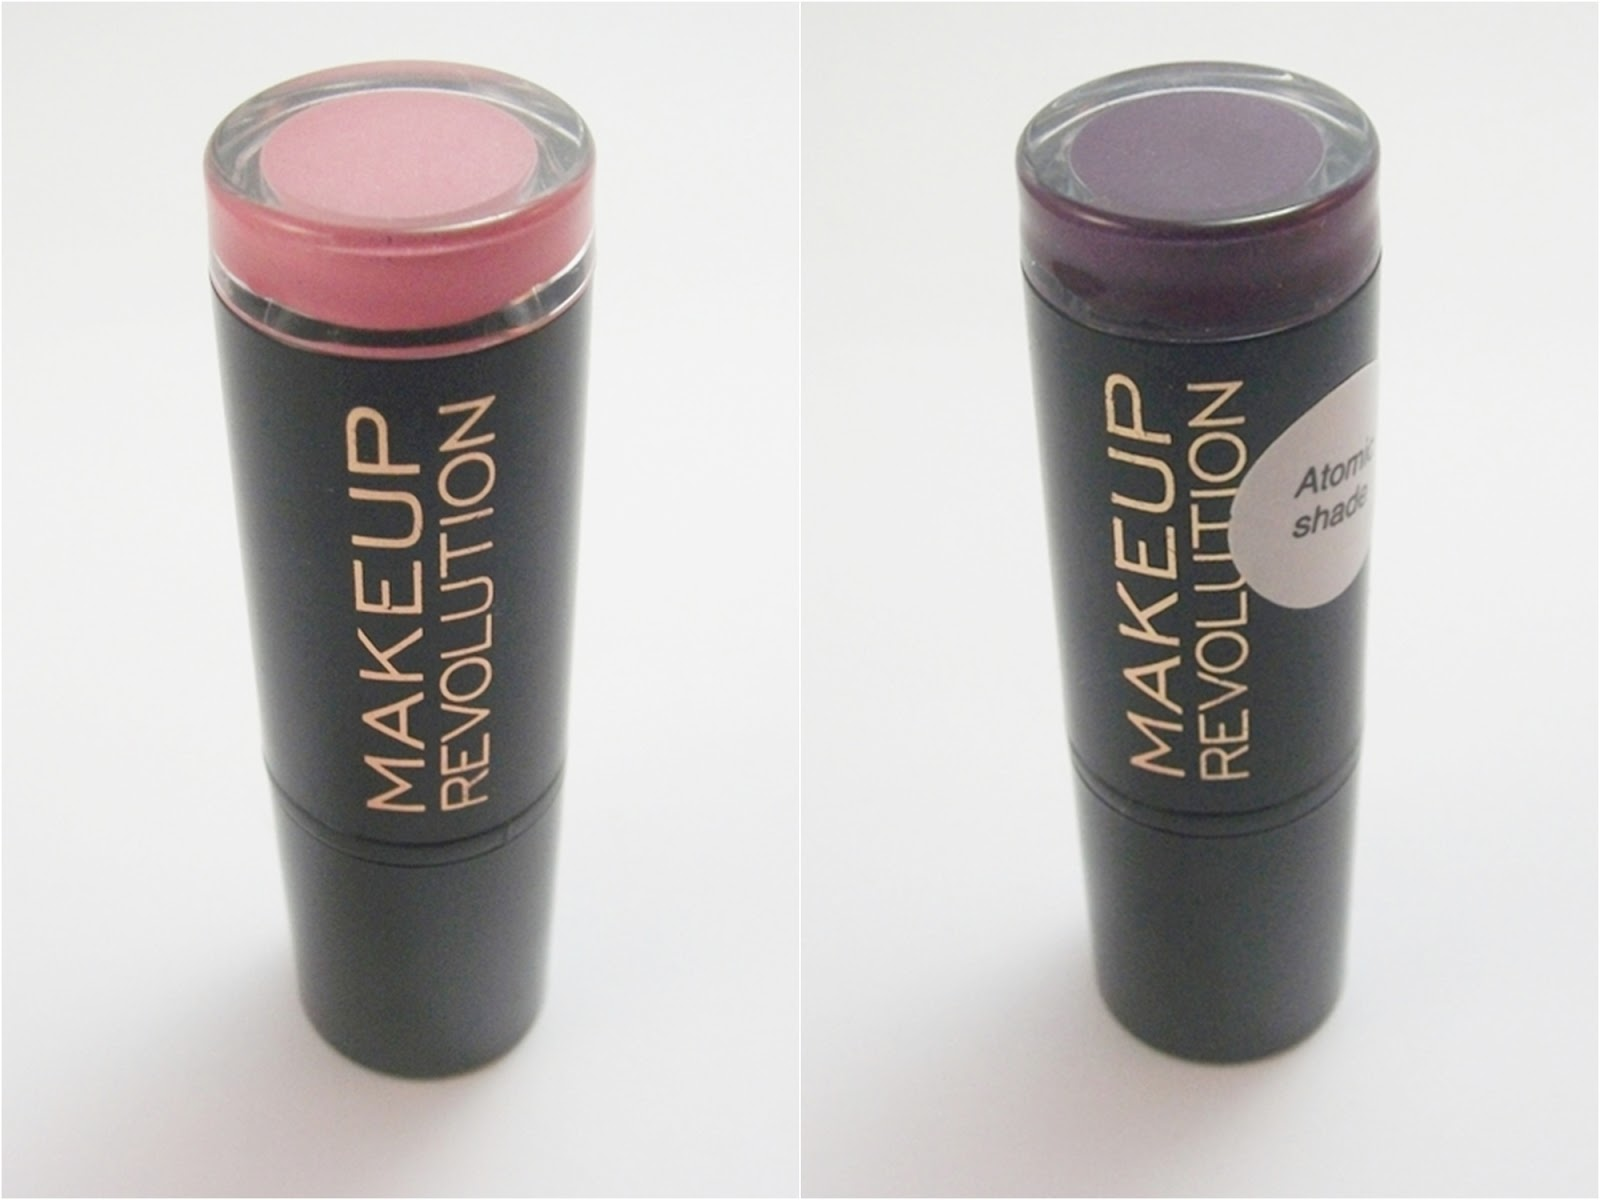 Makeup Revolution Dusky, da linha Amazing Lipstick e Make It Right, da linha Atomic Shade